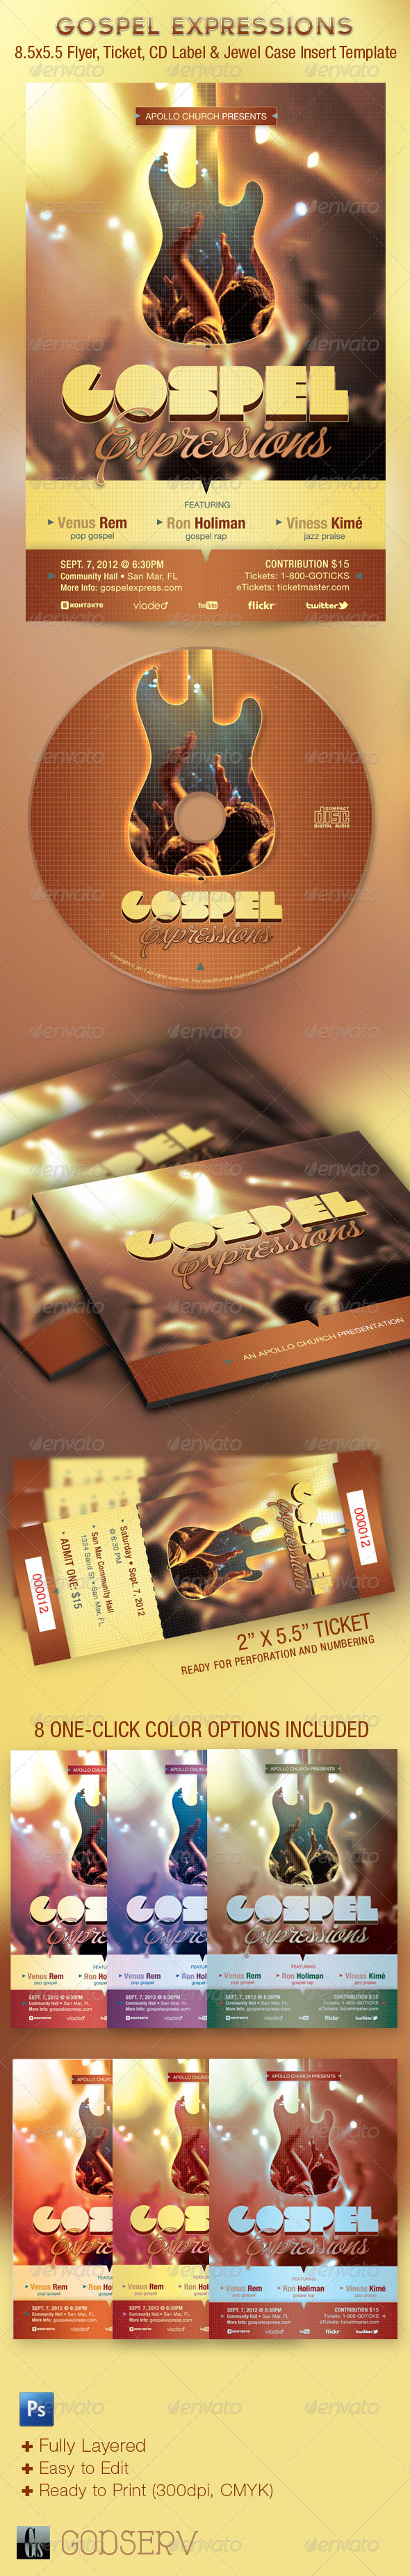 Gospel Expressions Church Flyer Ticket CD Template - Church Flyers